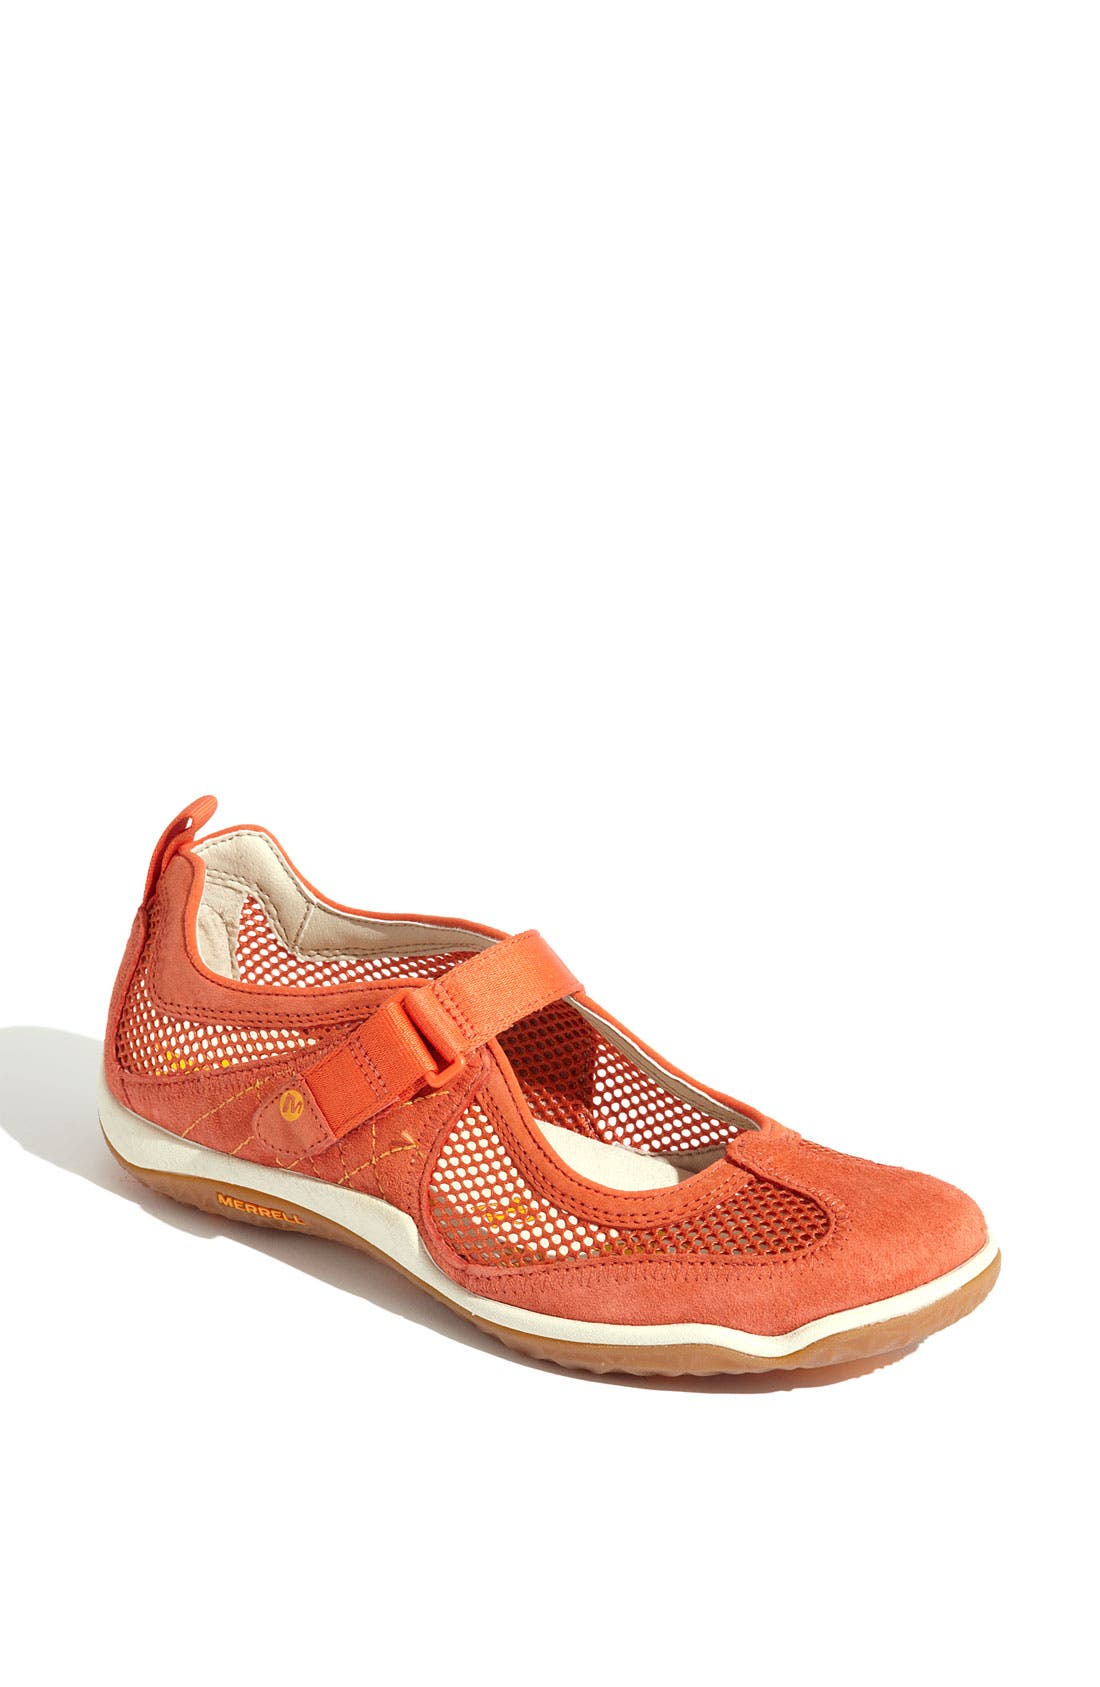 Alternate Image 1 Selected - MERRELL LORELEI EMME SANDAL